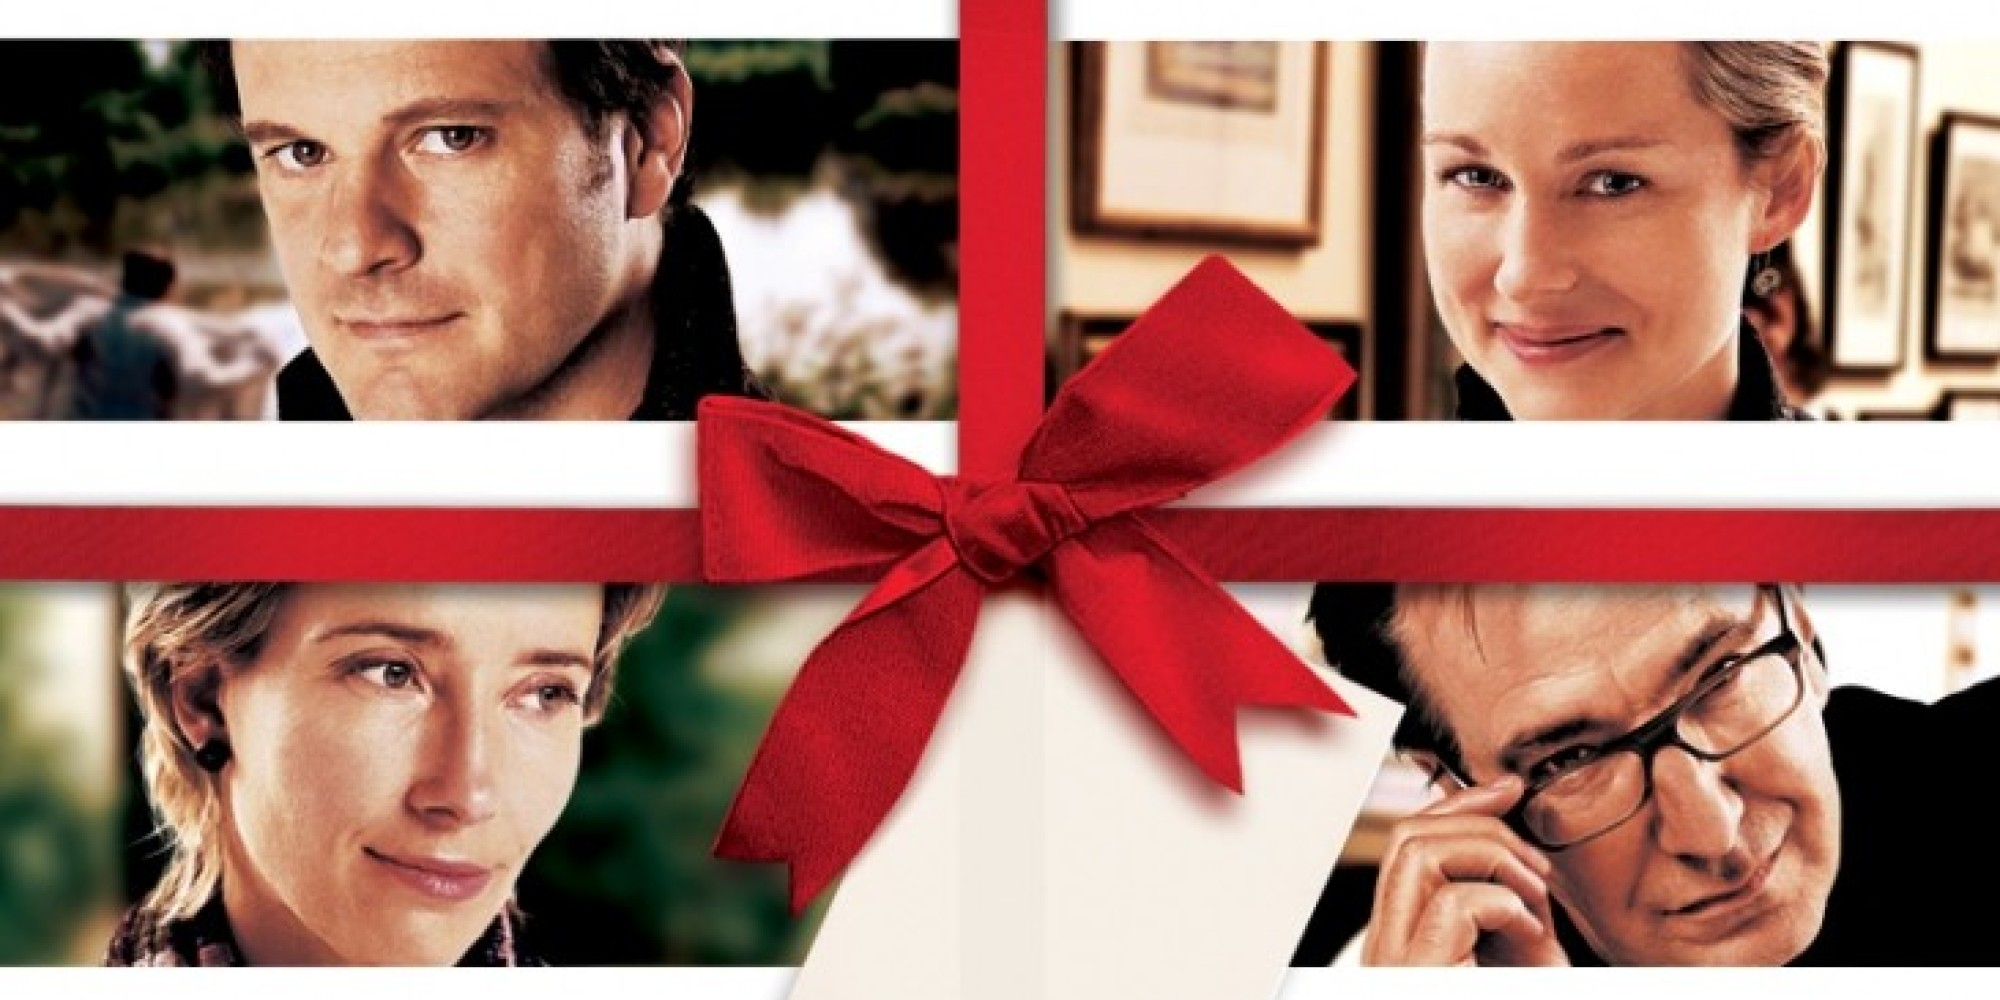 il film da vedere stasera 5 luglio love actually super guida tv. Black Bedroom Furniture Sets. Home Design Ideas